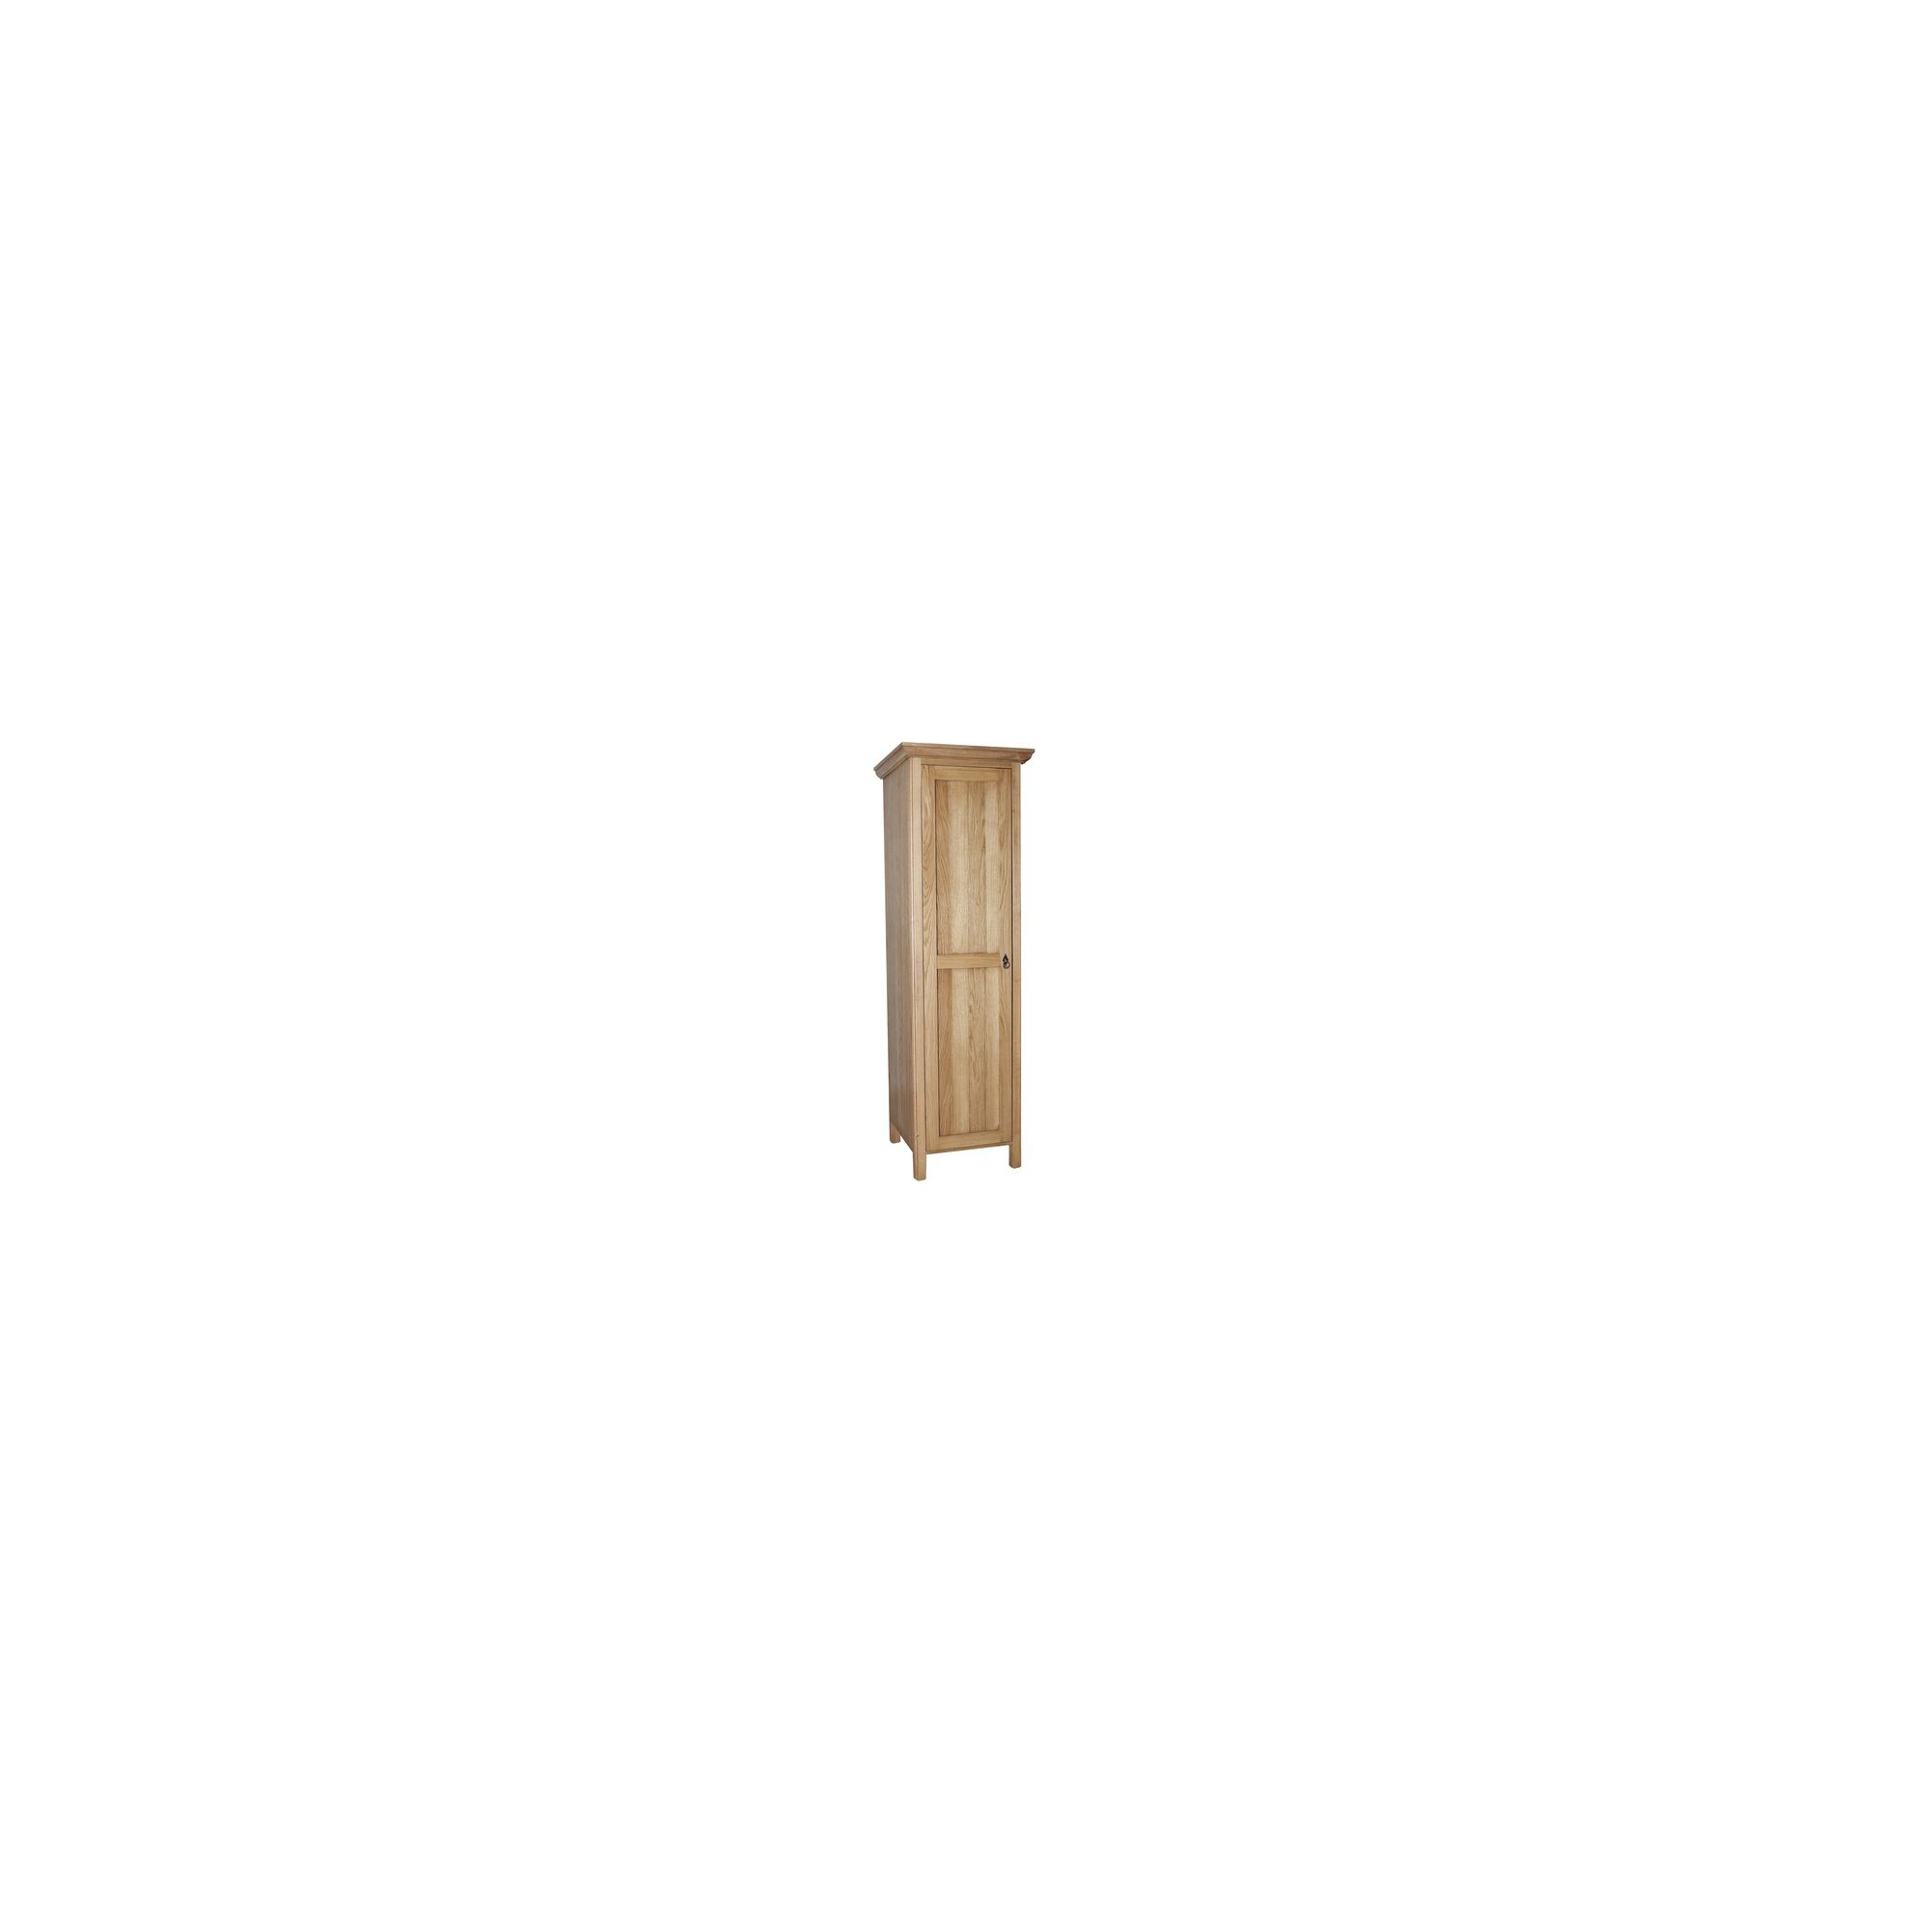 Sherry Designs Simply Bedroom 1 Door Oak Wardrobe at Tesco Direct